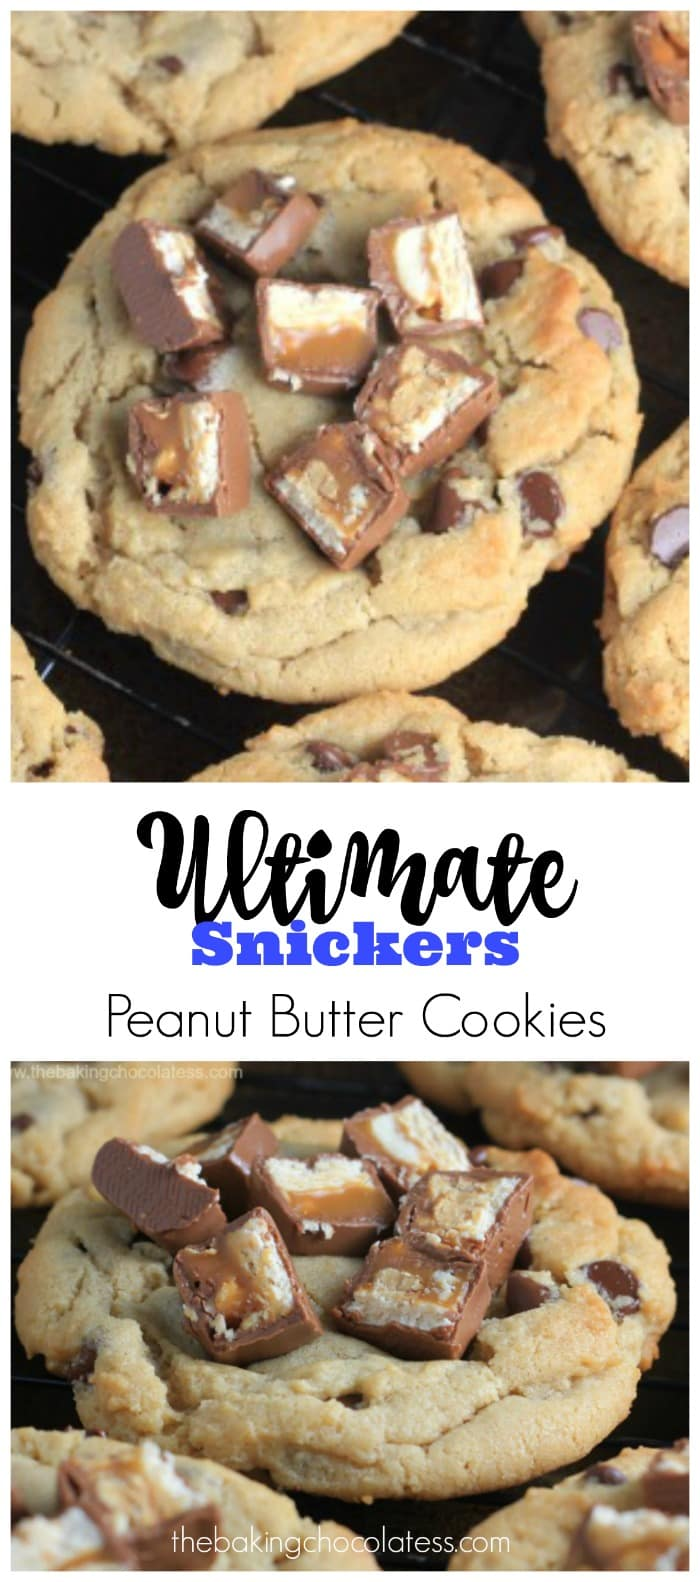 Ultimate Snickers Peanut Butter Cookies #snickers #cookies #peanut butter #cookies #baking